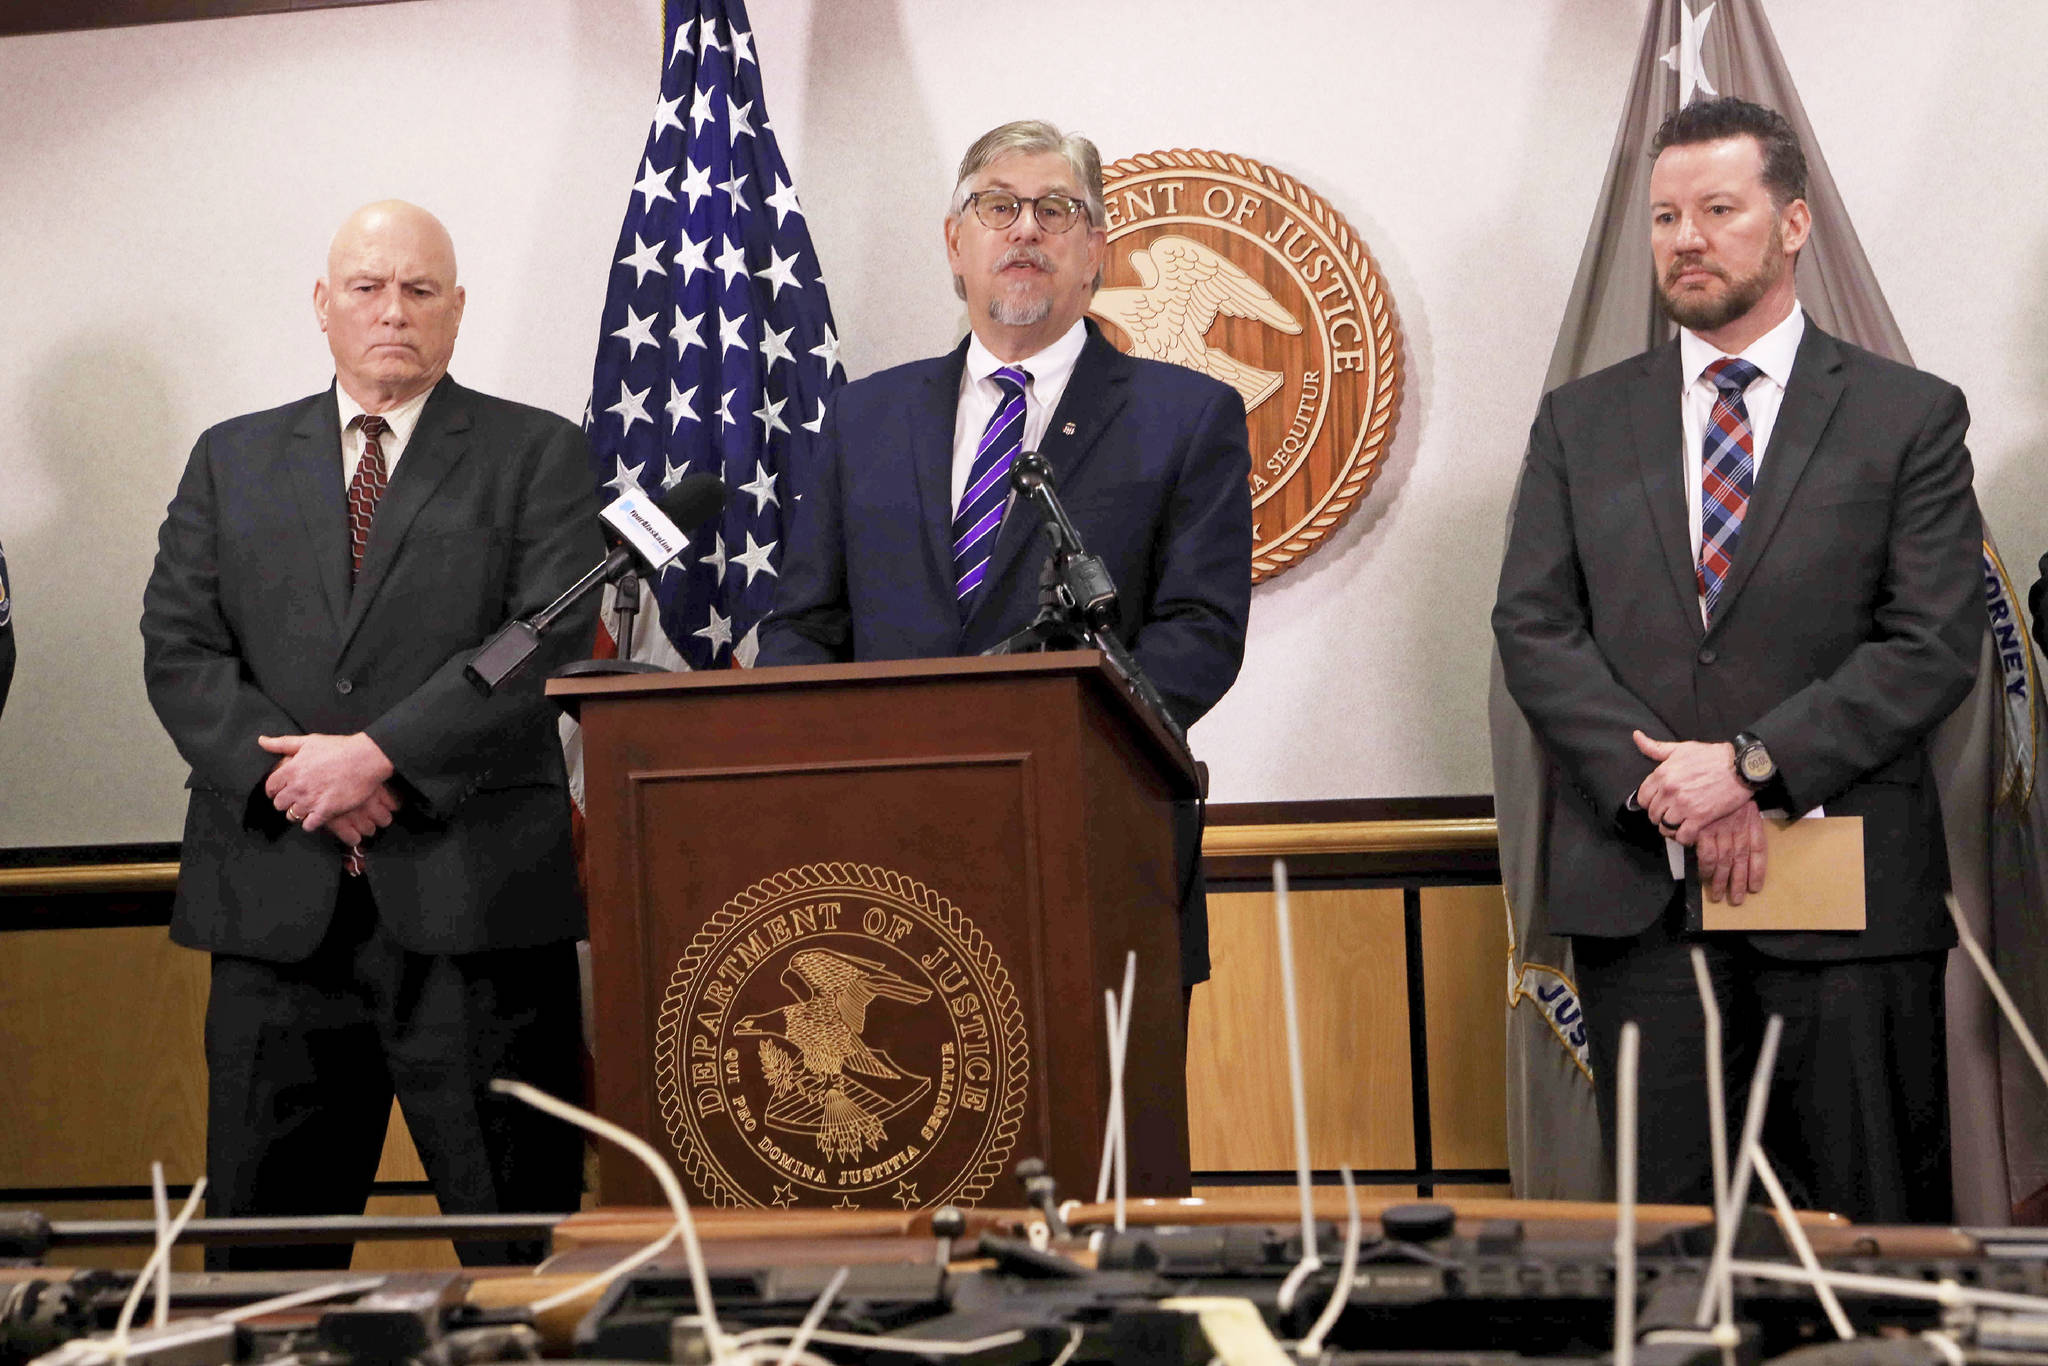 Bryan Schroder, center, U.S. attorney for Alaska, speaks at a press conference announcing the seizure of 82 illegally possessed guns in Anchorage and surrounding communities on Wednesday, Feb. 26, 2020, in Anchorage, Alaska. U.S Marshal Rob Heun, left, and Darek Pleasants of the Bureau of Alcohol, Tobacco and Firearms, right, look on. The investigation resulted in federal charges against 16 people for firearm or drug trafficking counts. (AP Photo/Dan Joling)